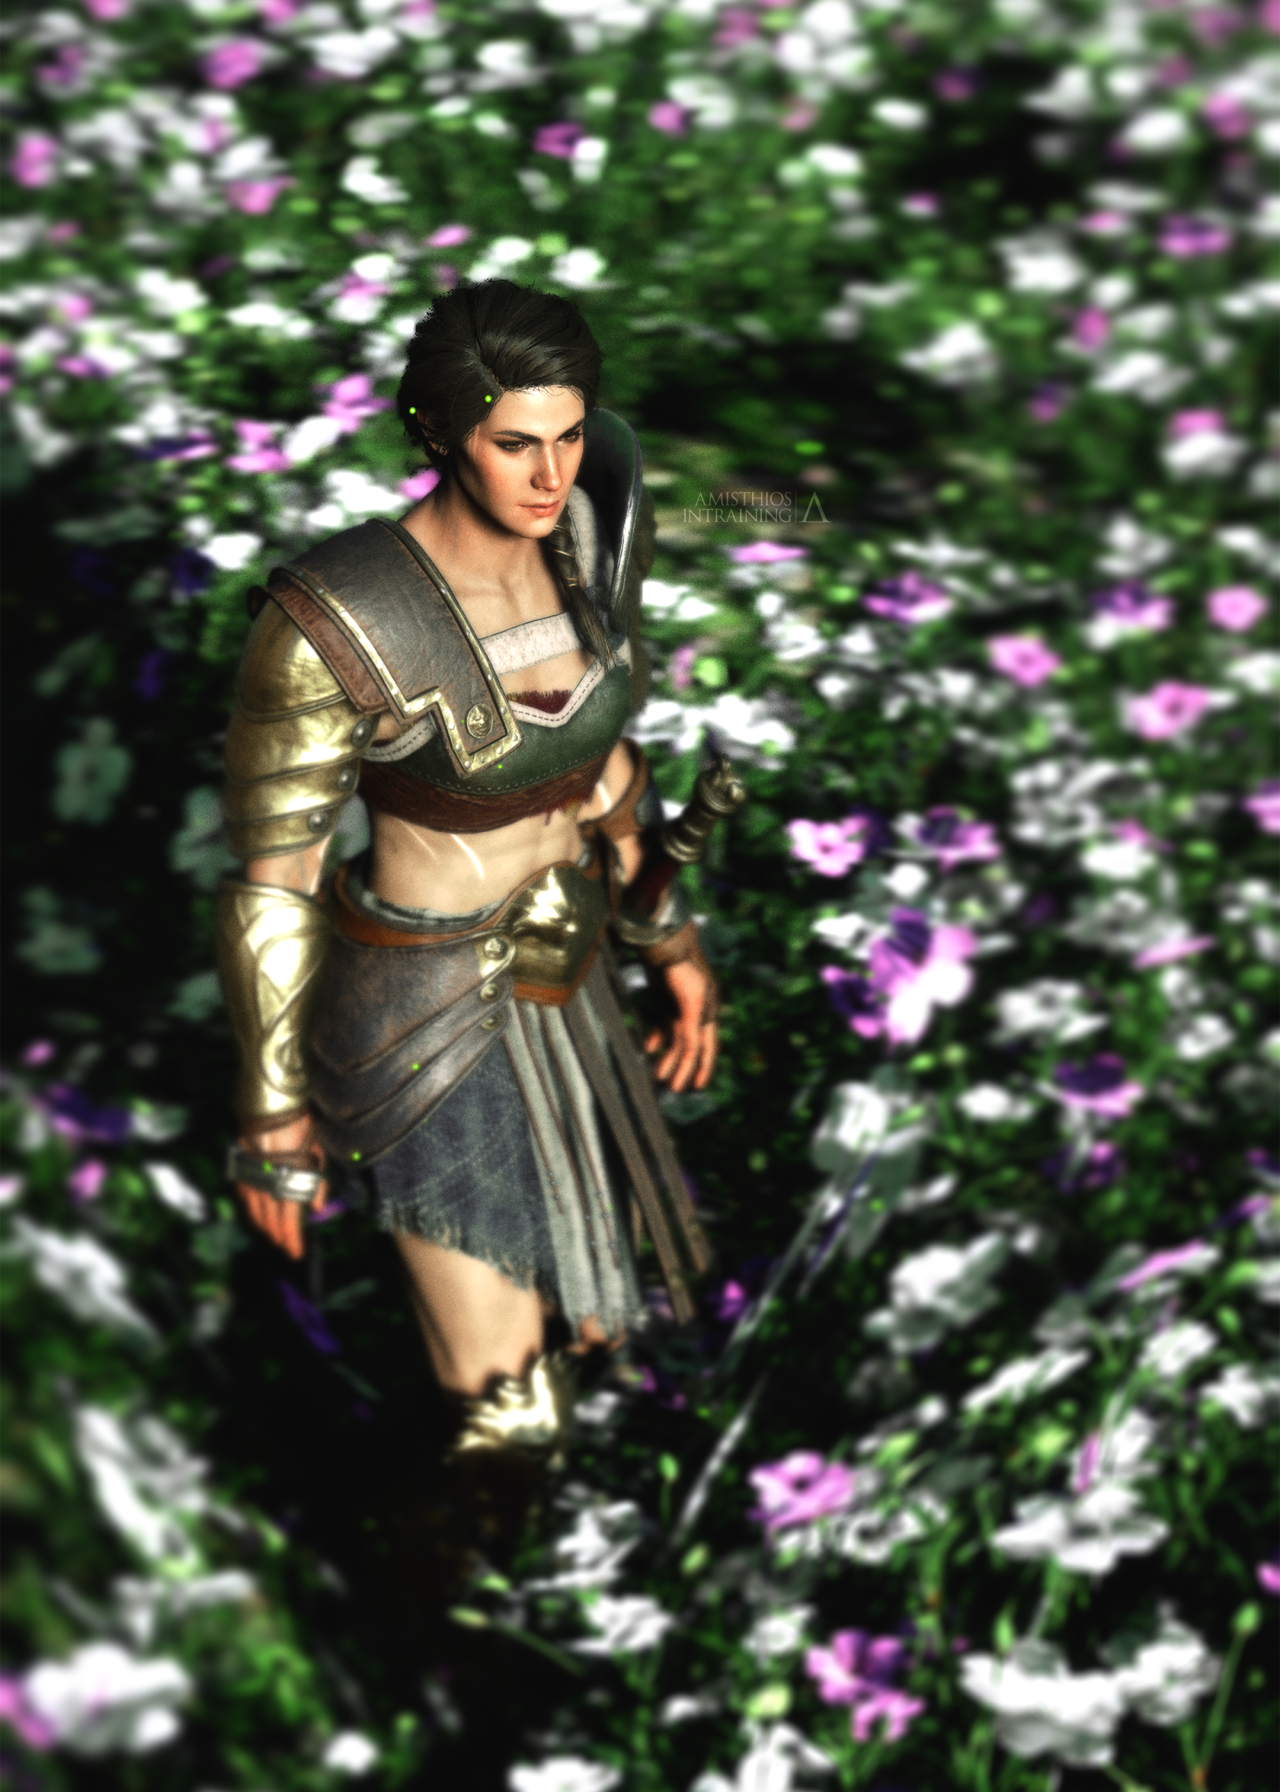 04.25.2021 | ElysiumMods by hypermorphic, @ilikedetectives, BenderBendingRodriguez3000, and I. Camera tools by Frans Bouma. Captured using ReShade and Nvidia Ansel. #kassandra#misthios#eagle bearer #the eagle bearer  #assassins creed odyssey #ac odyssey#assassins creed#pc games#pc gaming#pc mods#virtual photography #ac photo mode #photo mode#ubisoft